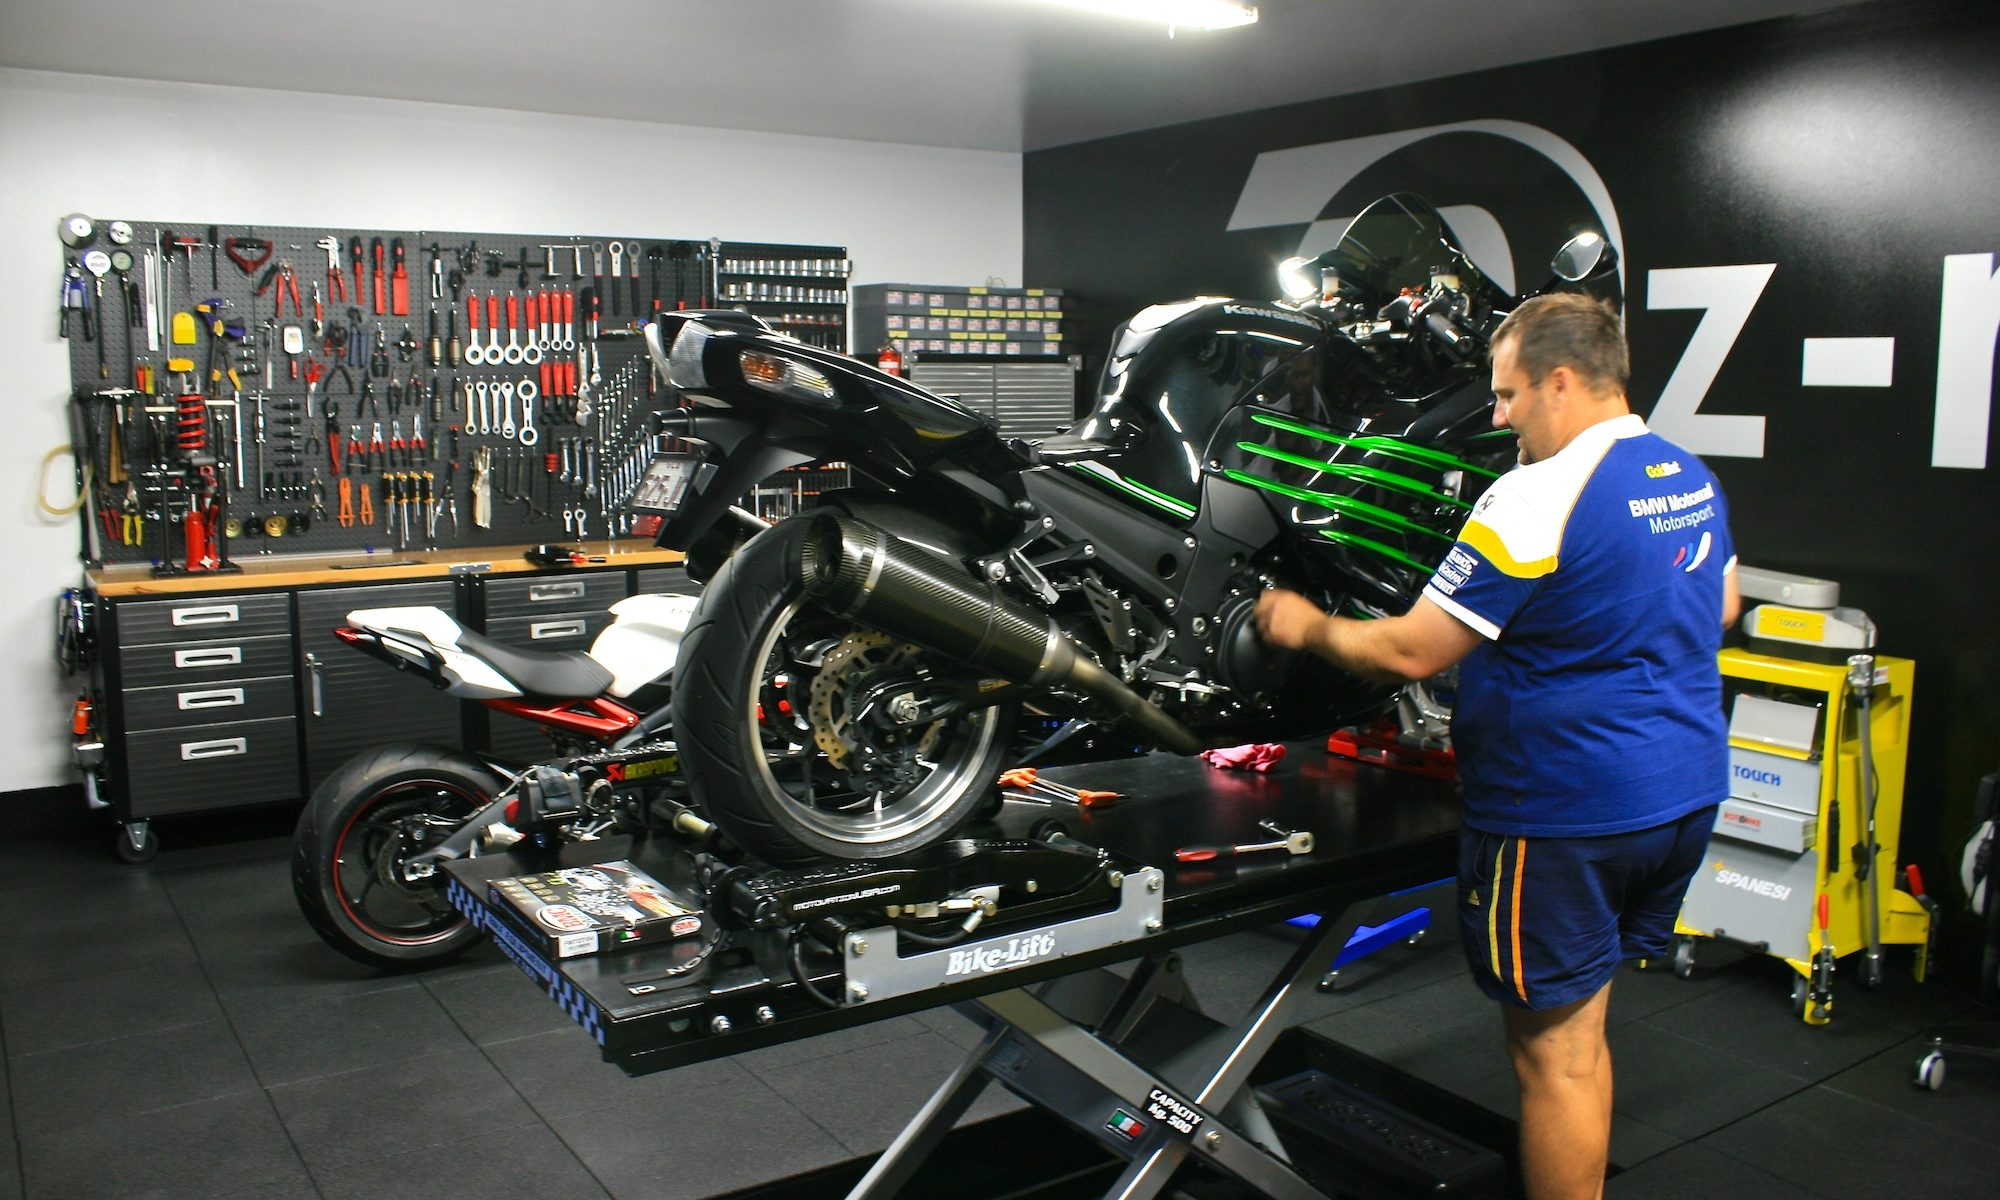 Ozzy Graf servicing a motorcycle in the Oz-racing workshop